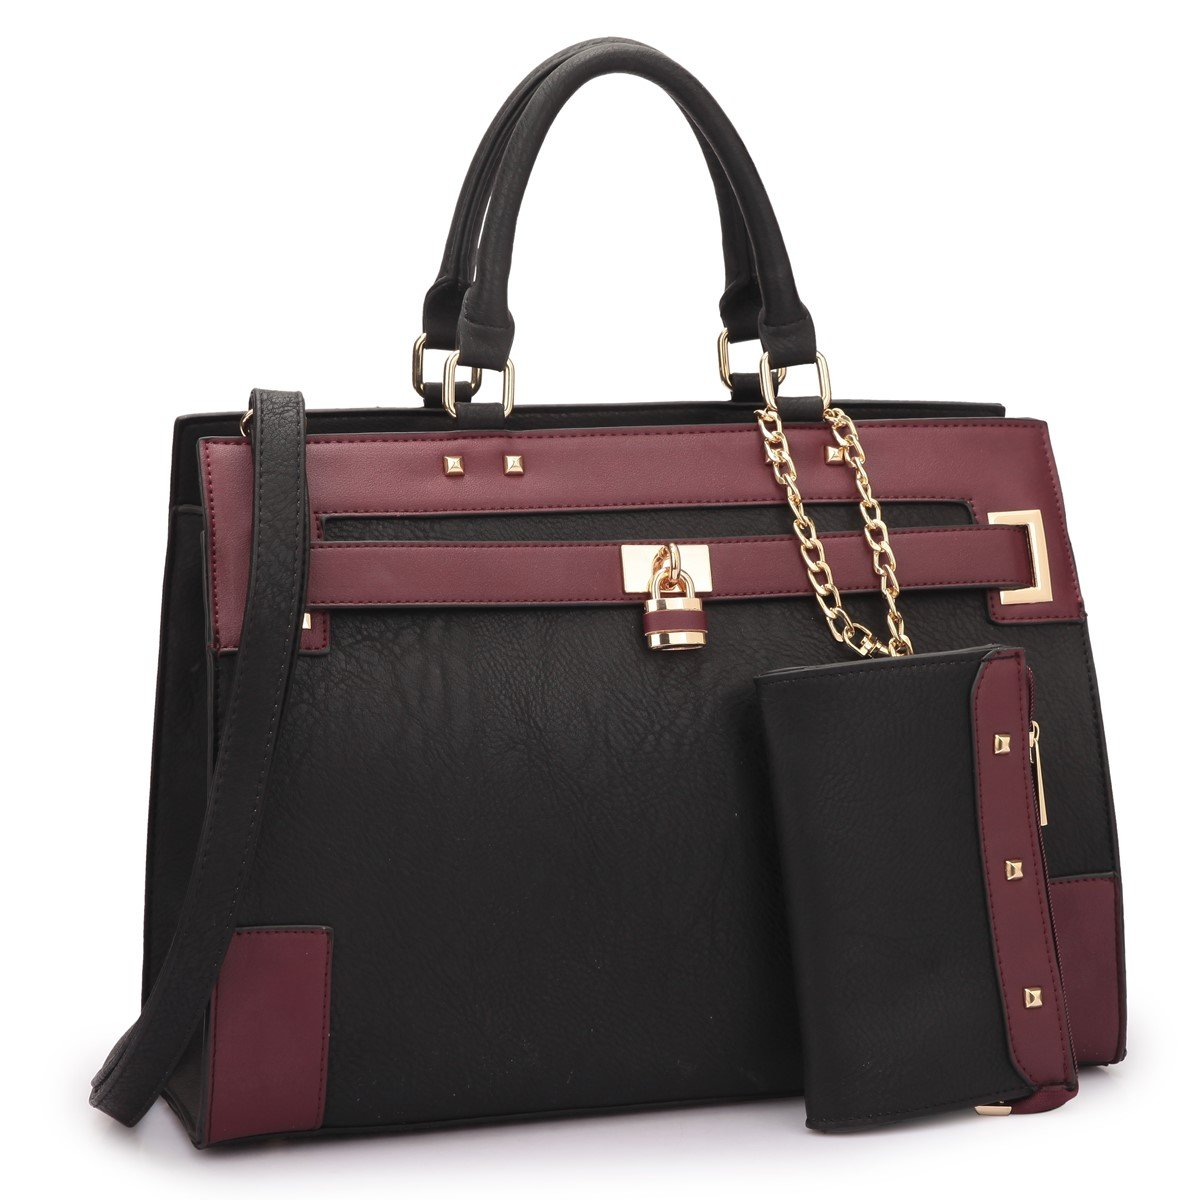 Women's Two Tone Fashion Handbag For Women Top Handle Satchel Bag Padlock Designer Purse With Matching Wristlet